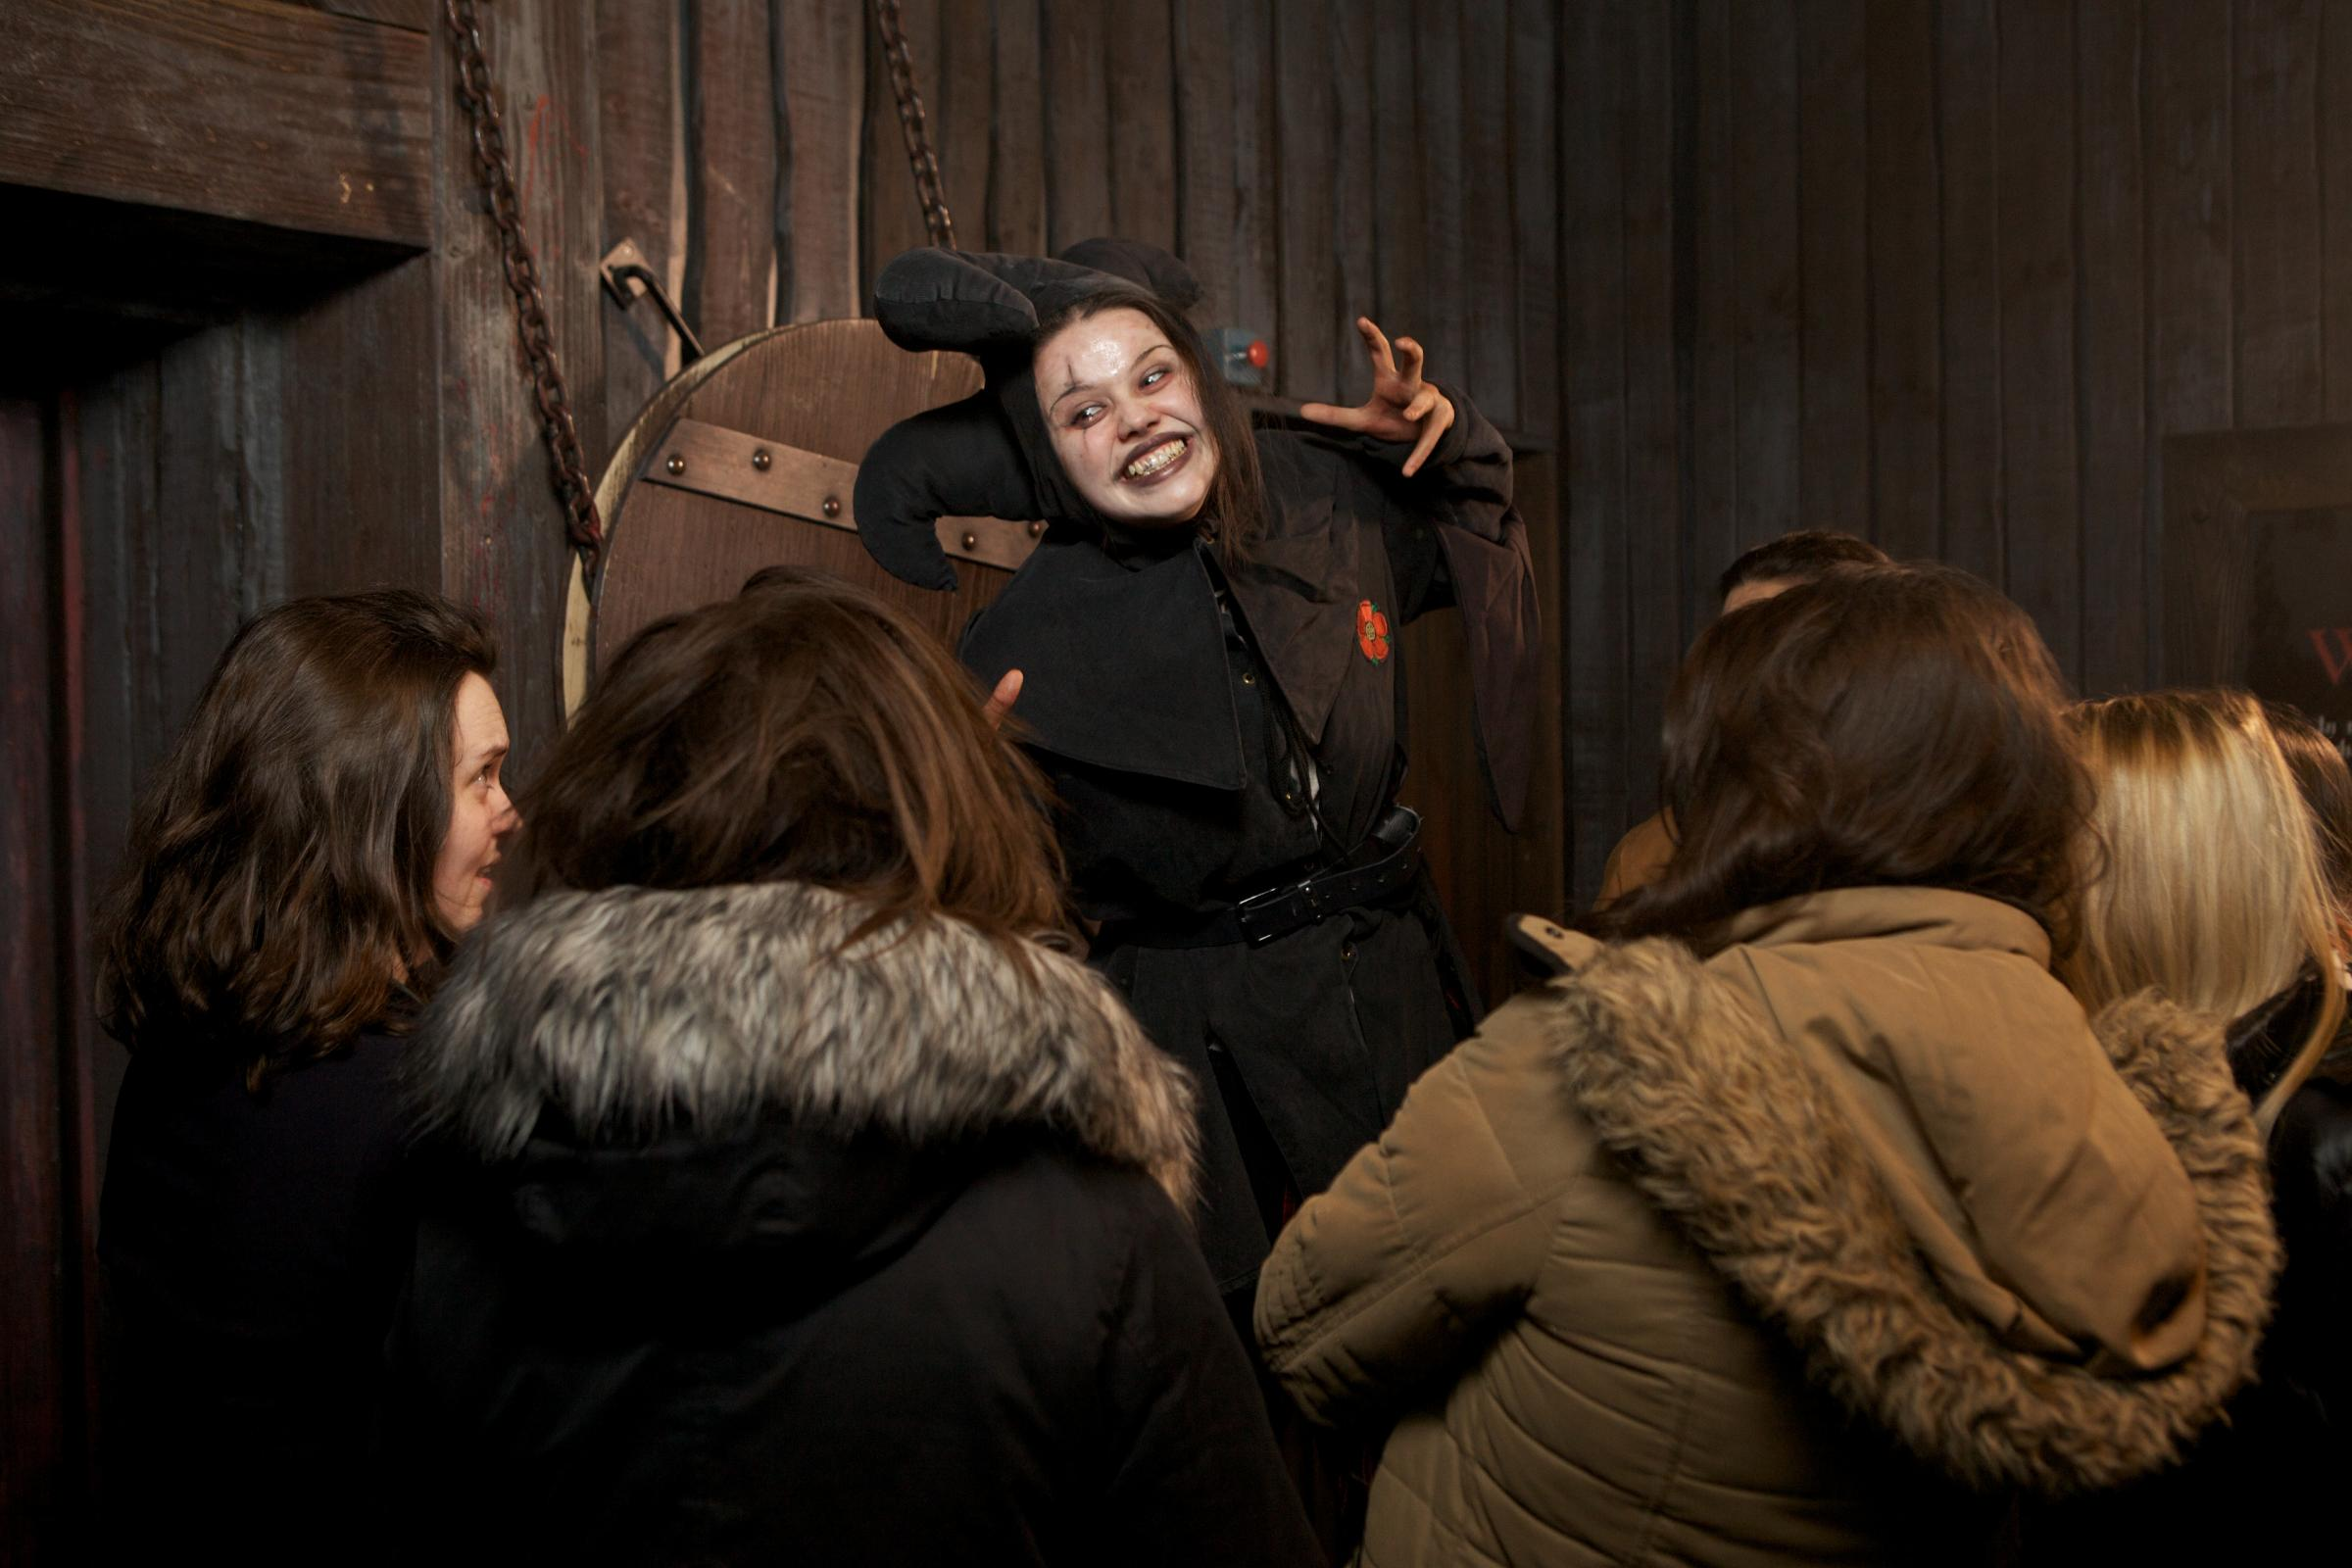 Half Term Halloween at The Blackpool Tower Dungeon